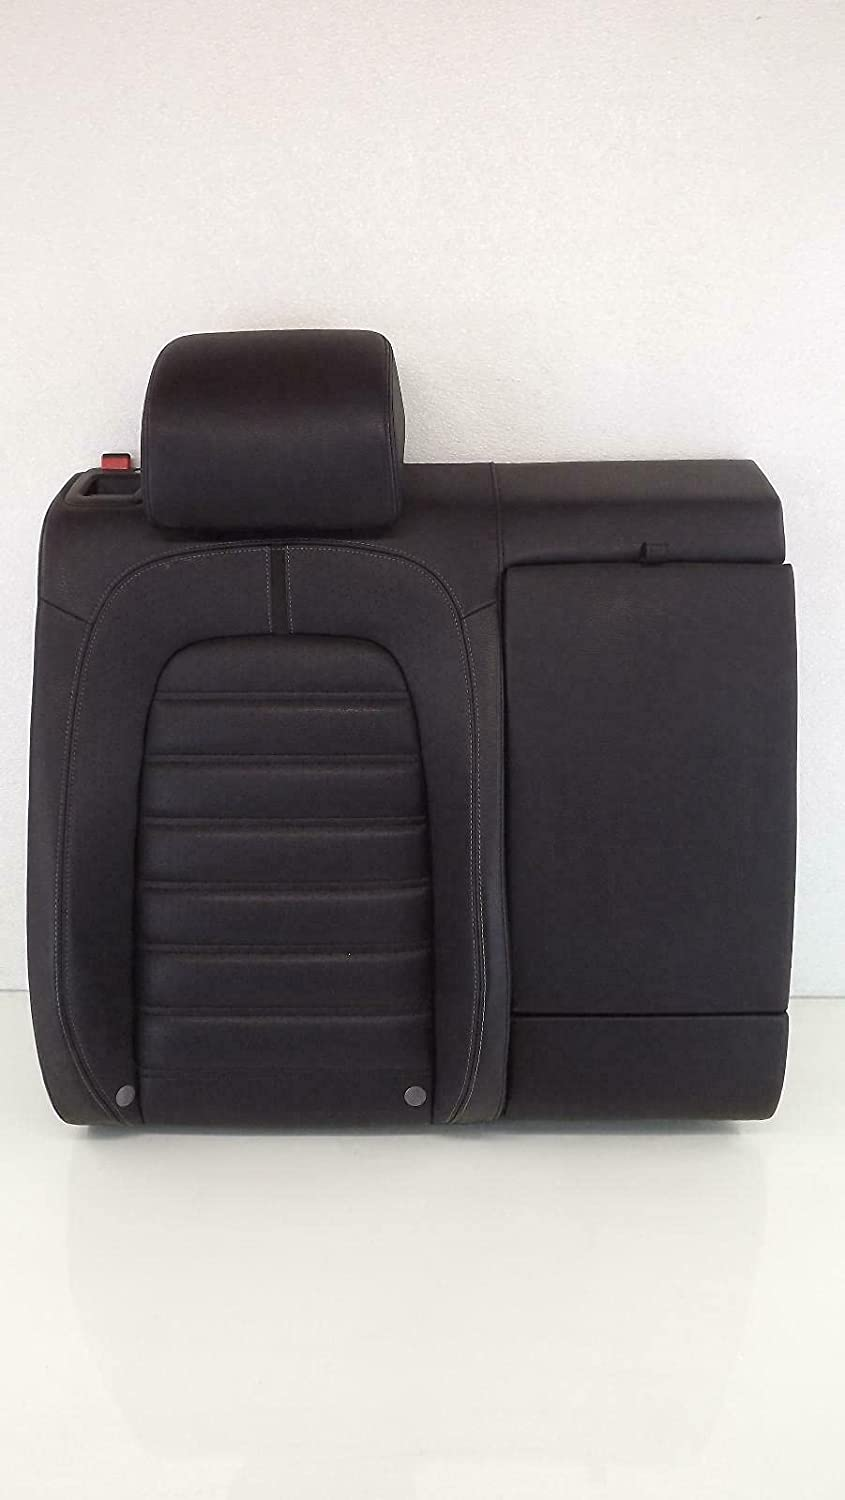 Morad Parts Brand new 11 Compatible with Some reservation Black Volkswagen CC Leather Upper